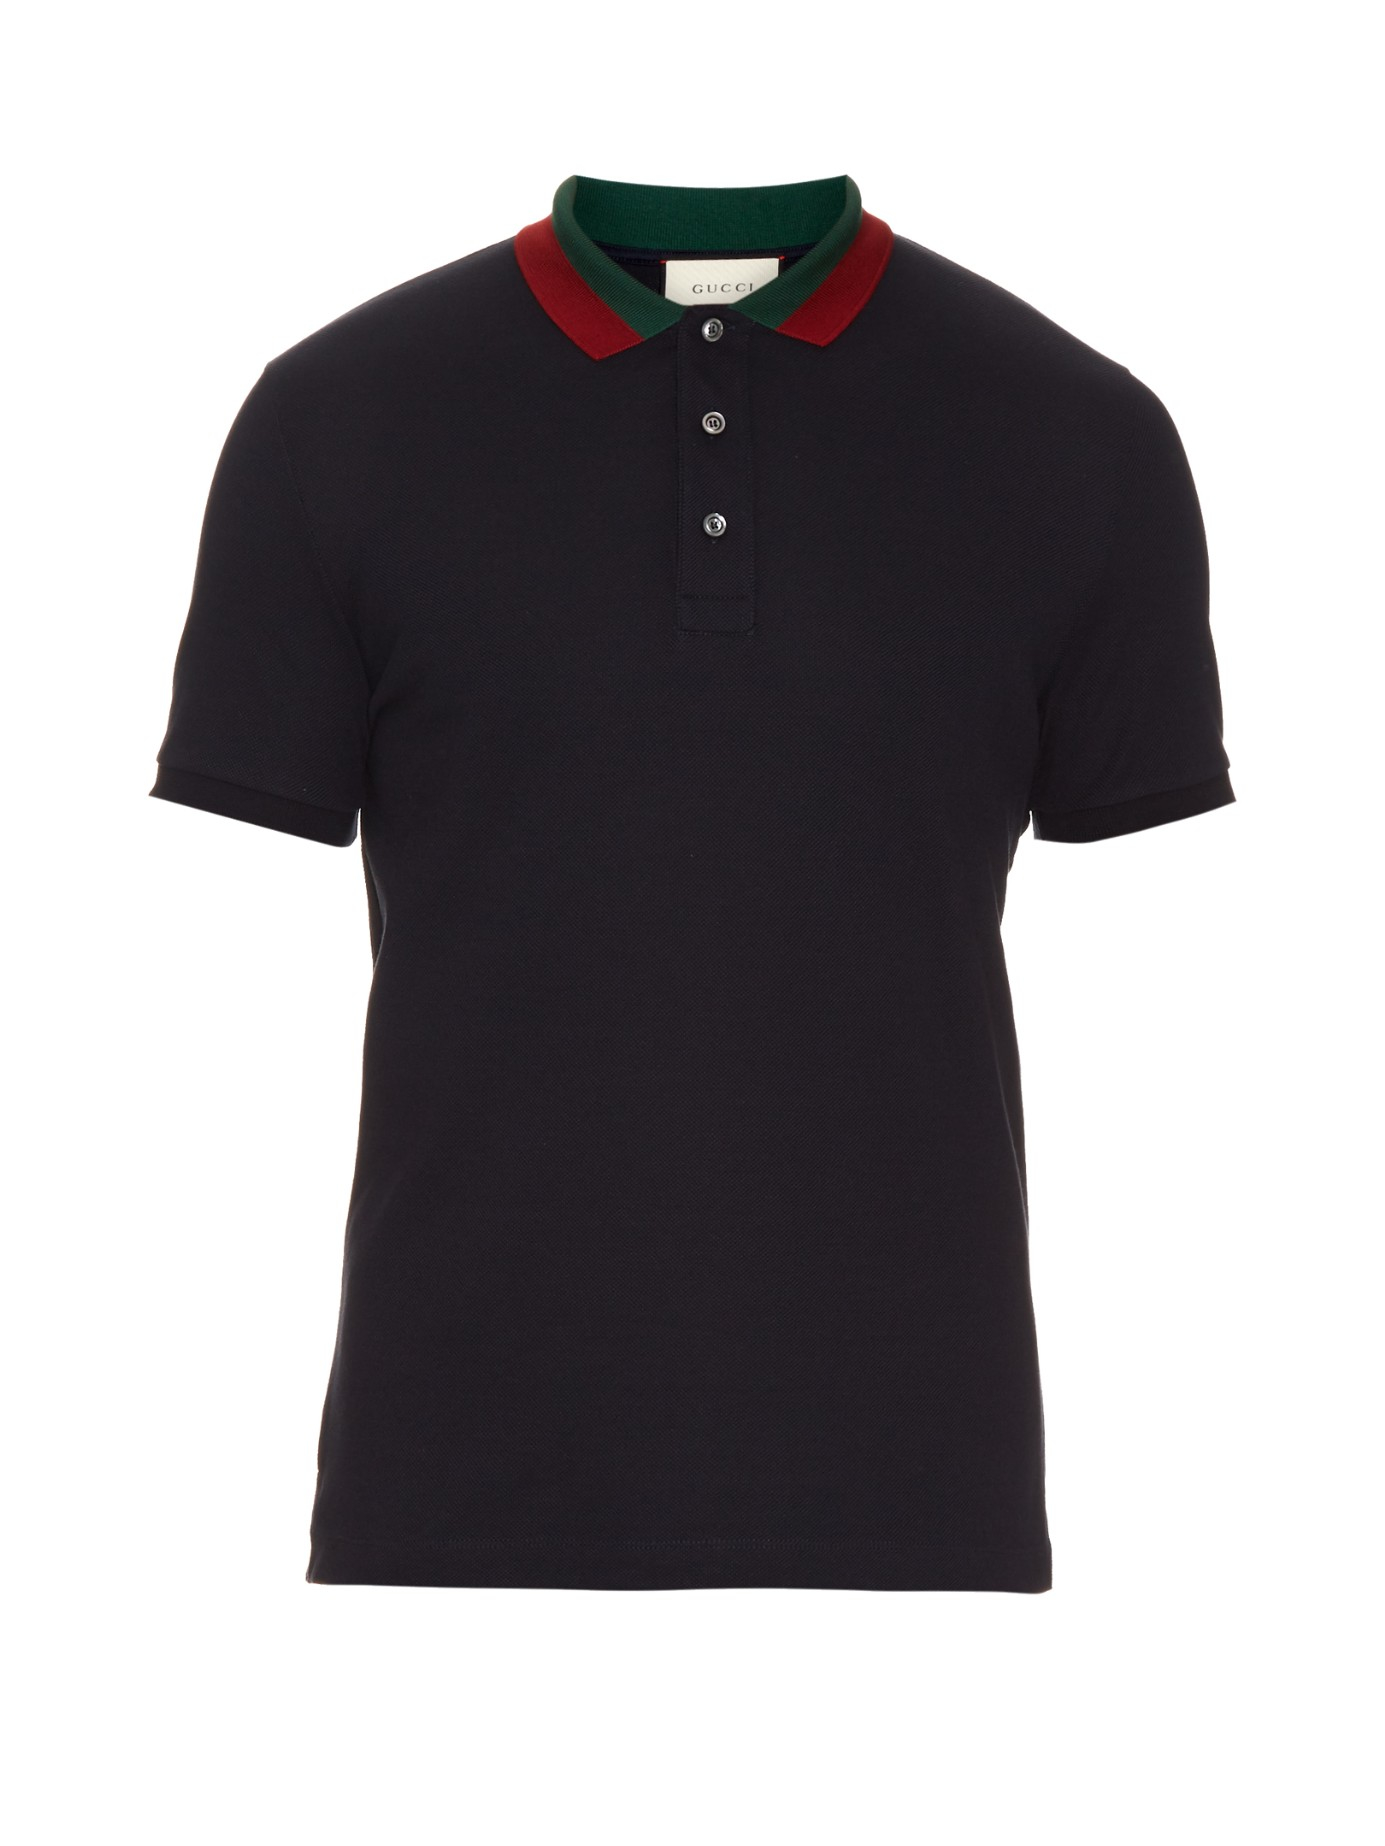 8b637c379d5 Gucci Polo Shirts. Gucci Floral-embroidered Cotton-blend Polo Shirt in Black  for Men